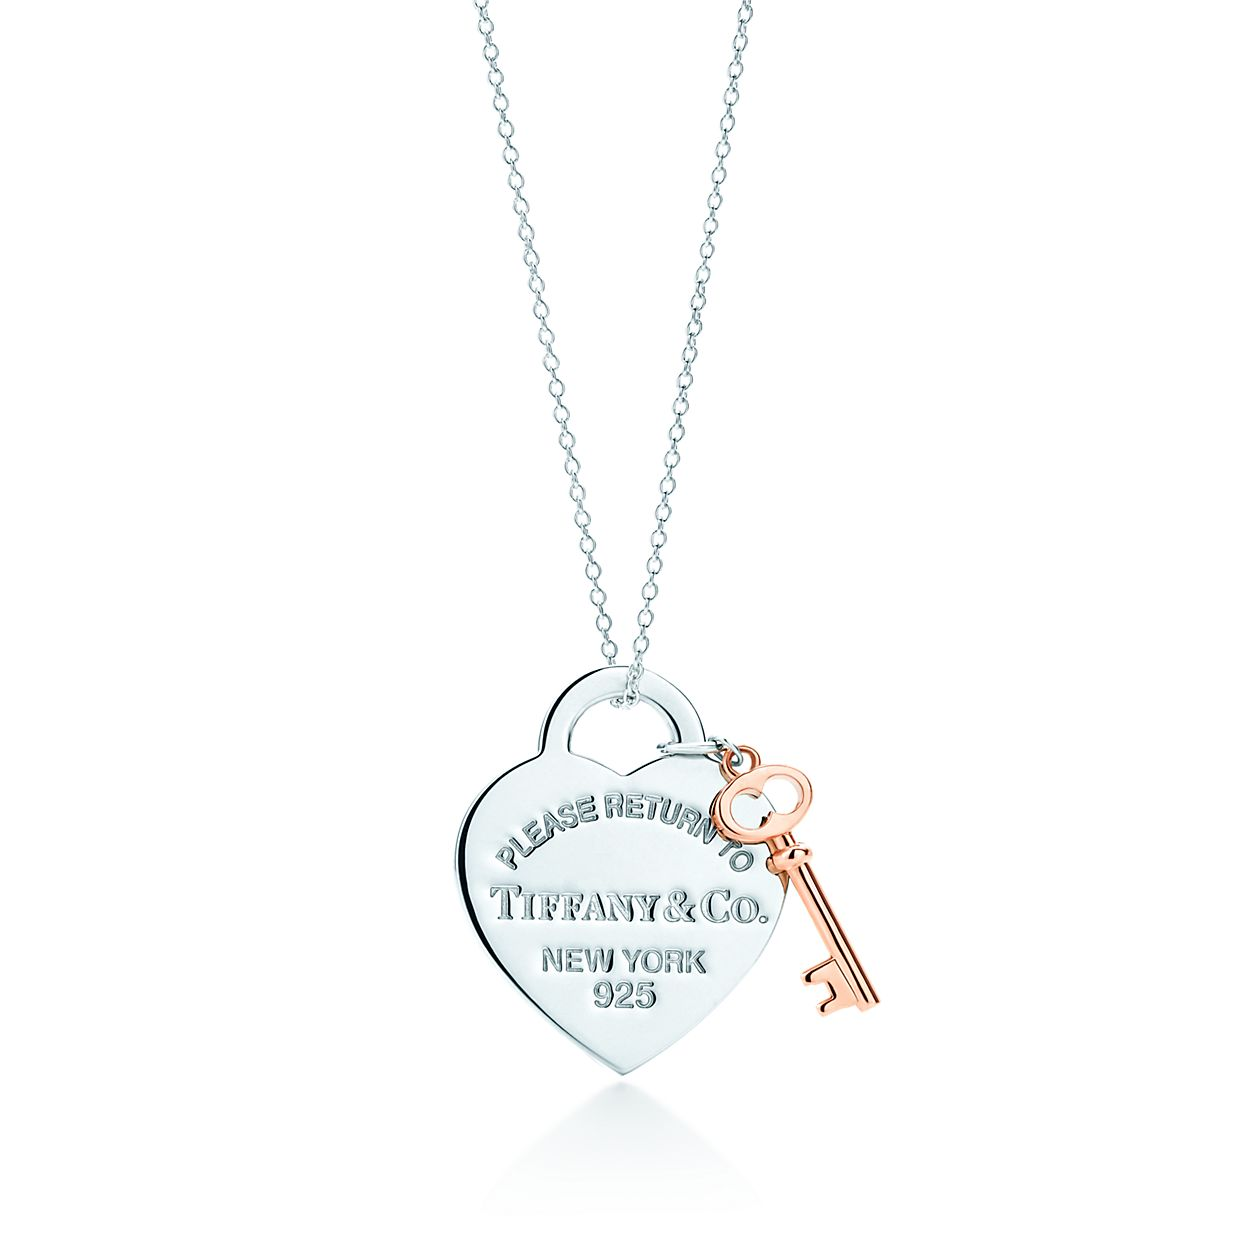 Return to Tiffany medium heart tag with key pendant in sterling silver - Size 16 in Tiffany & Co. wv5KSU2U90